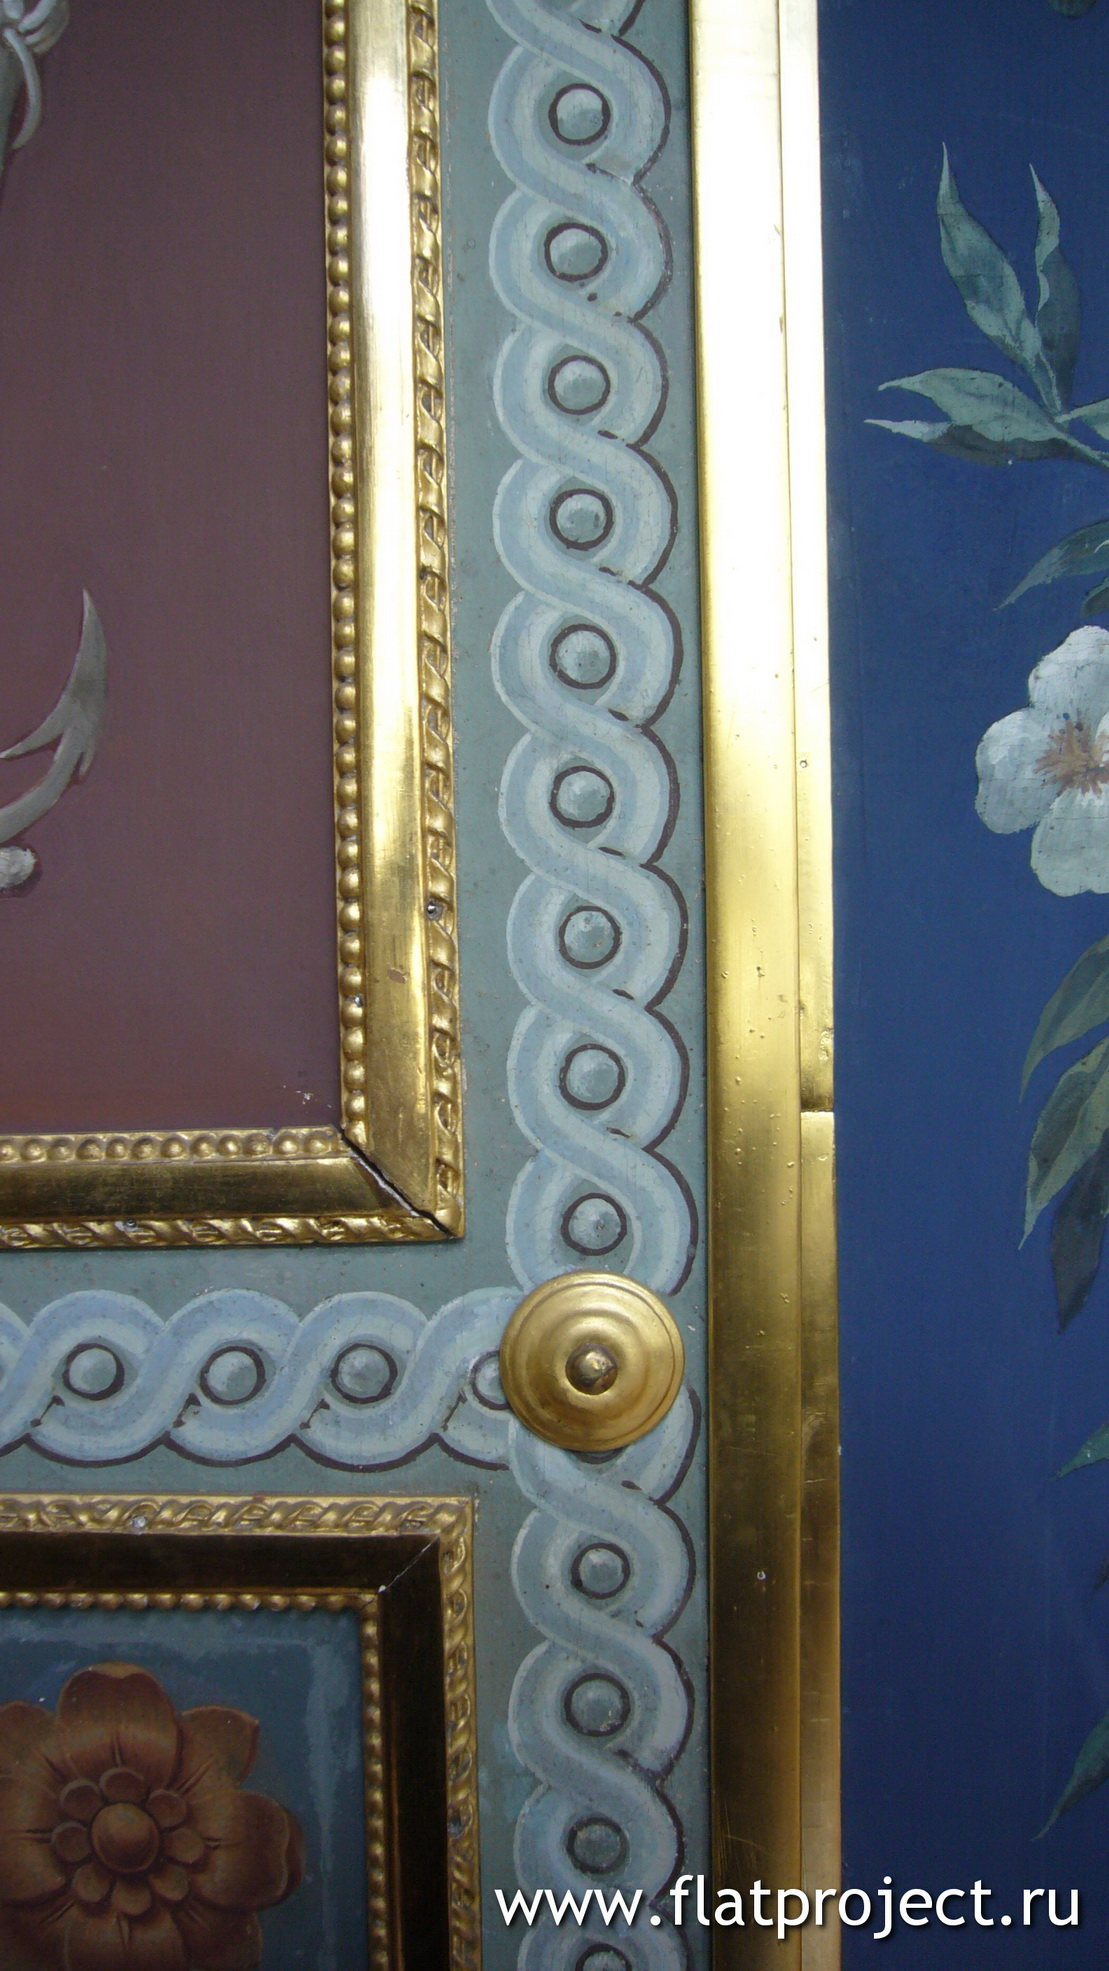 The State Hermitage museum interiors – photo 148